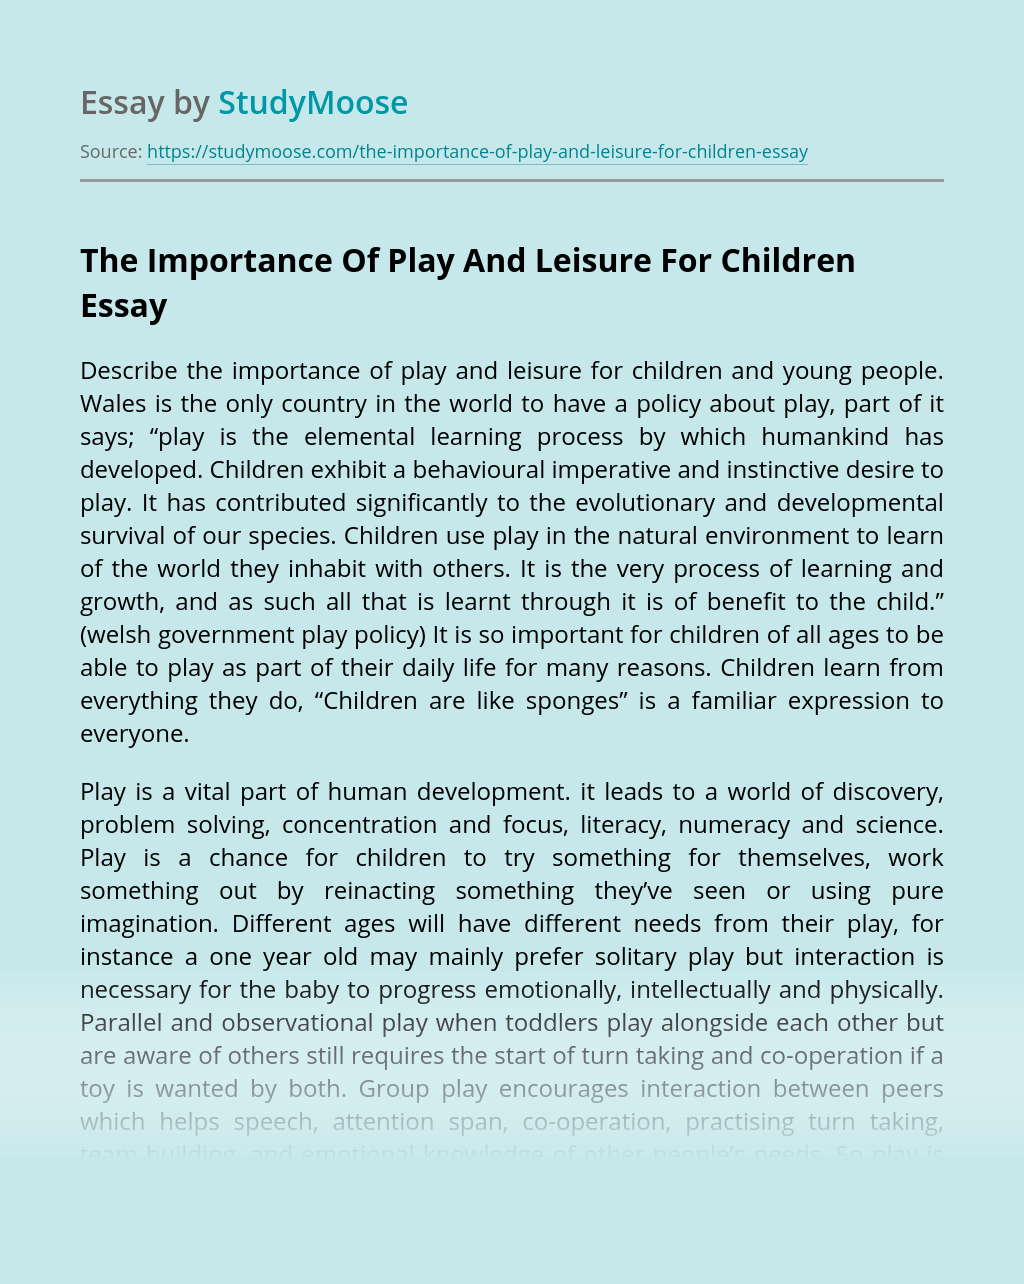 The Importance Of Play And Leisure For Children